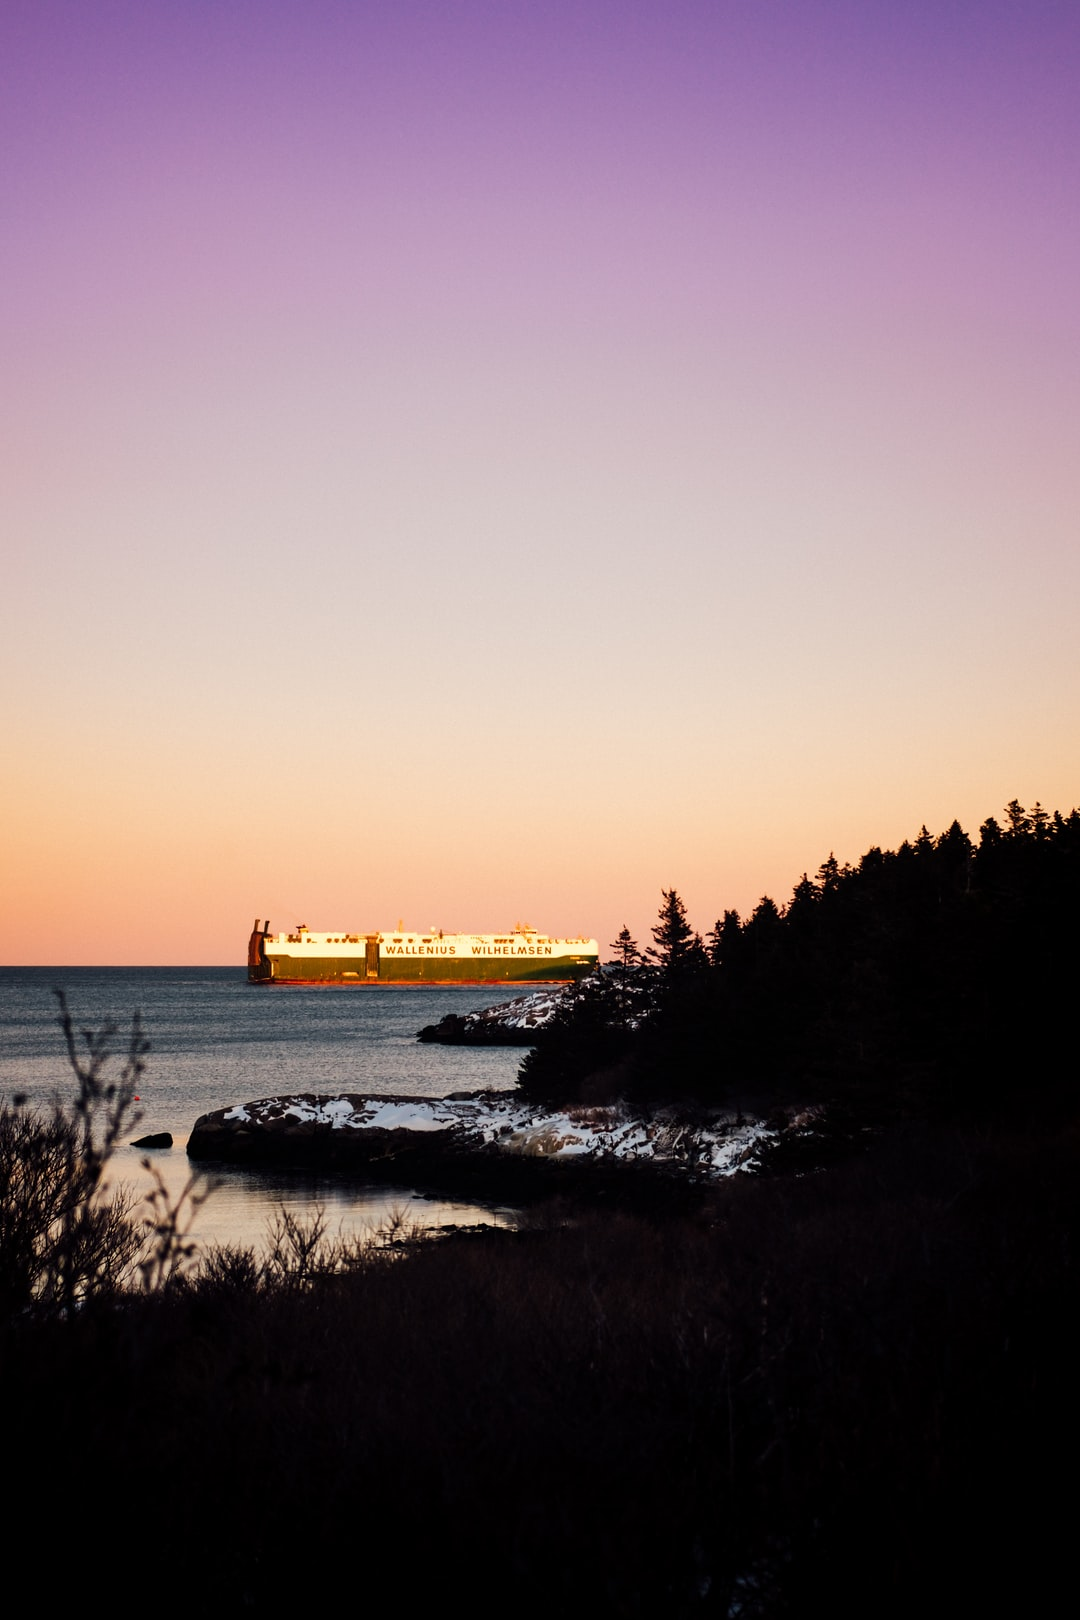 Container ship leaving the Halifax port at sunset